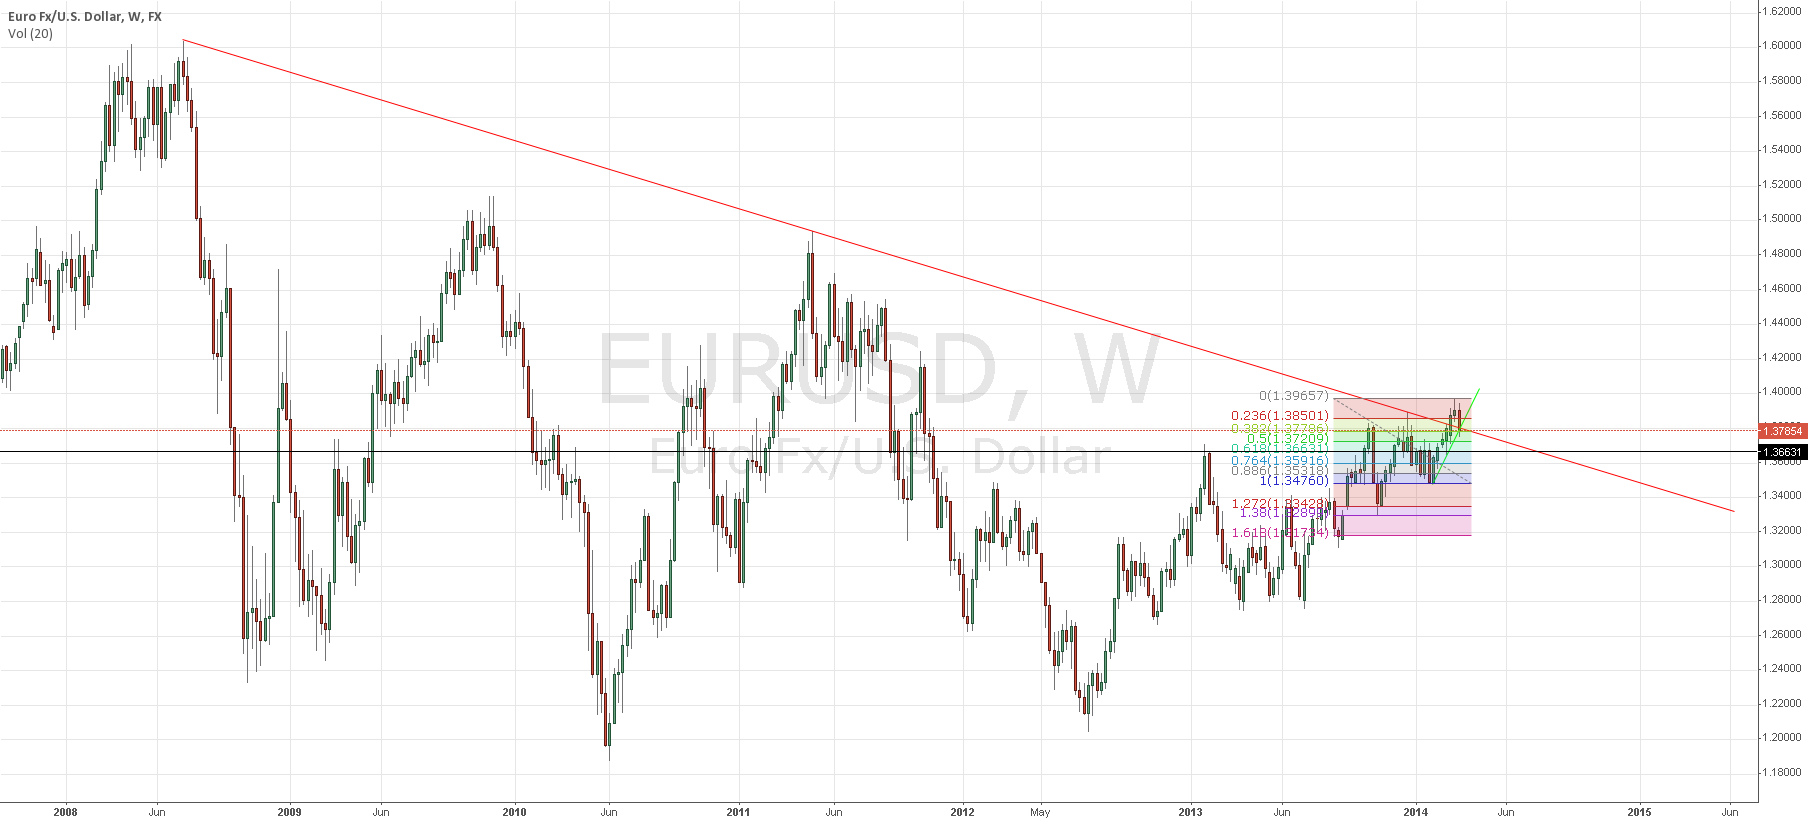 200 pip loading zone for potential longs on EUR/USD